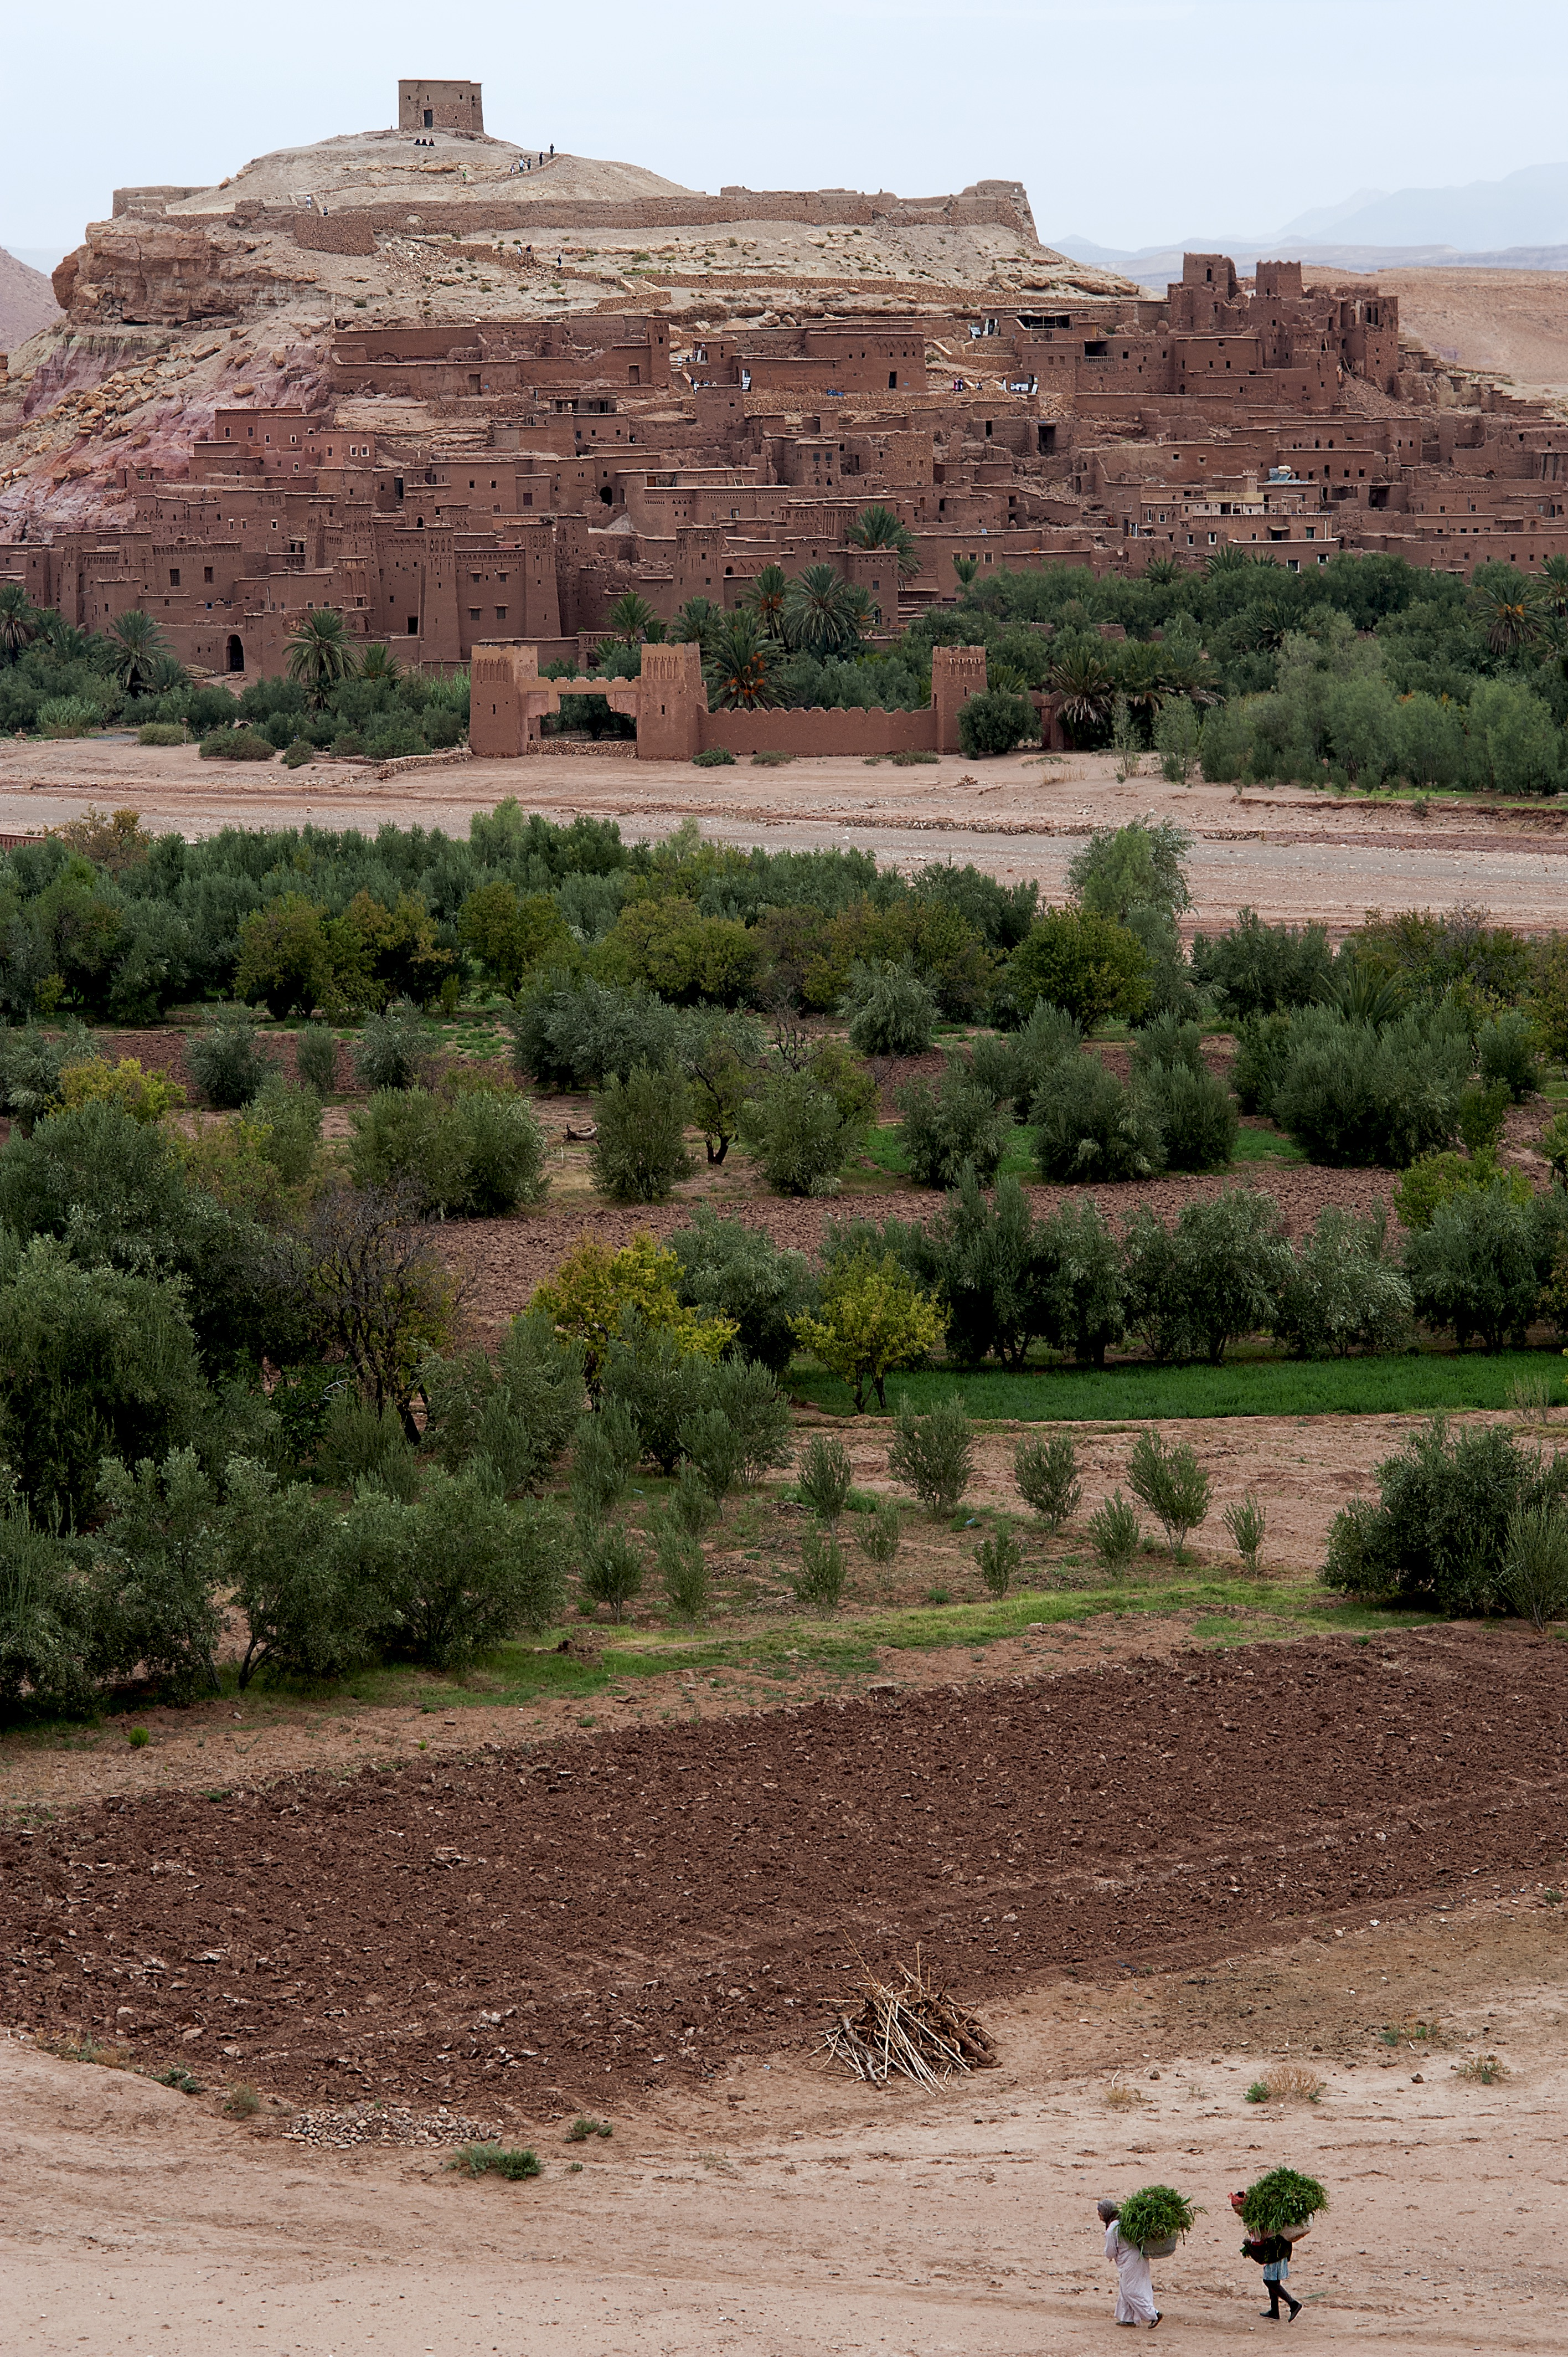 Ait Benhaddou and farmers carrying hay bales